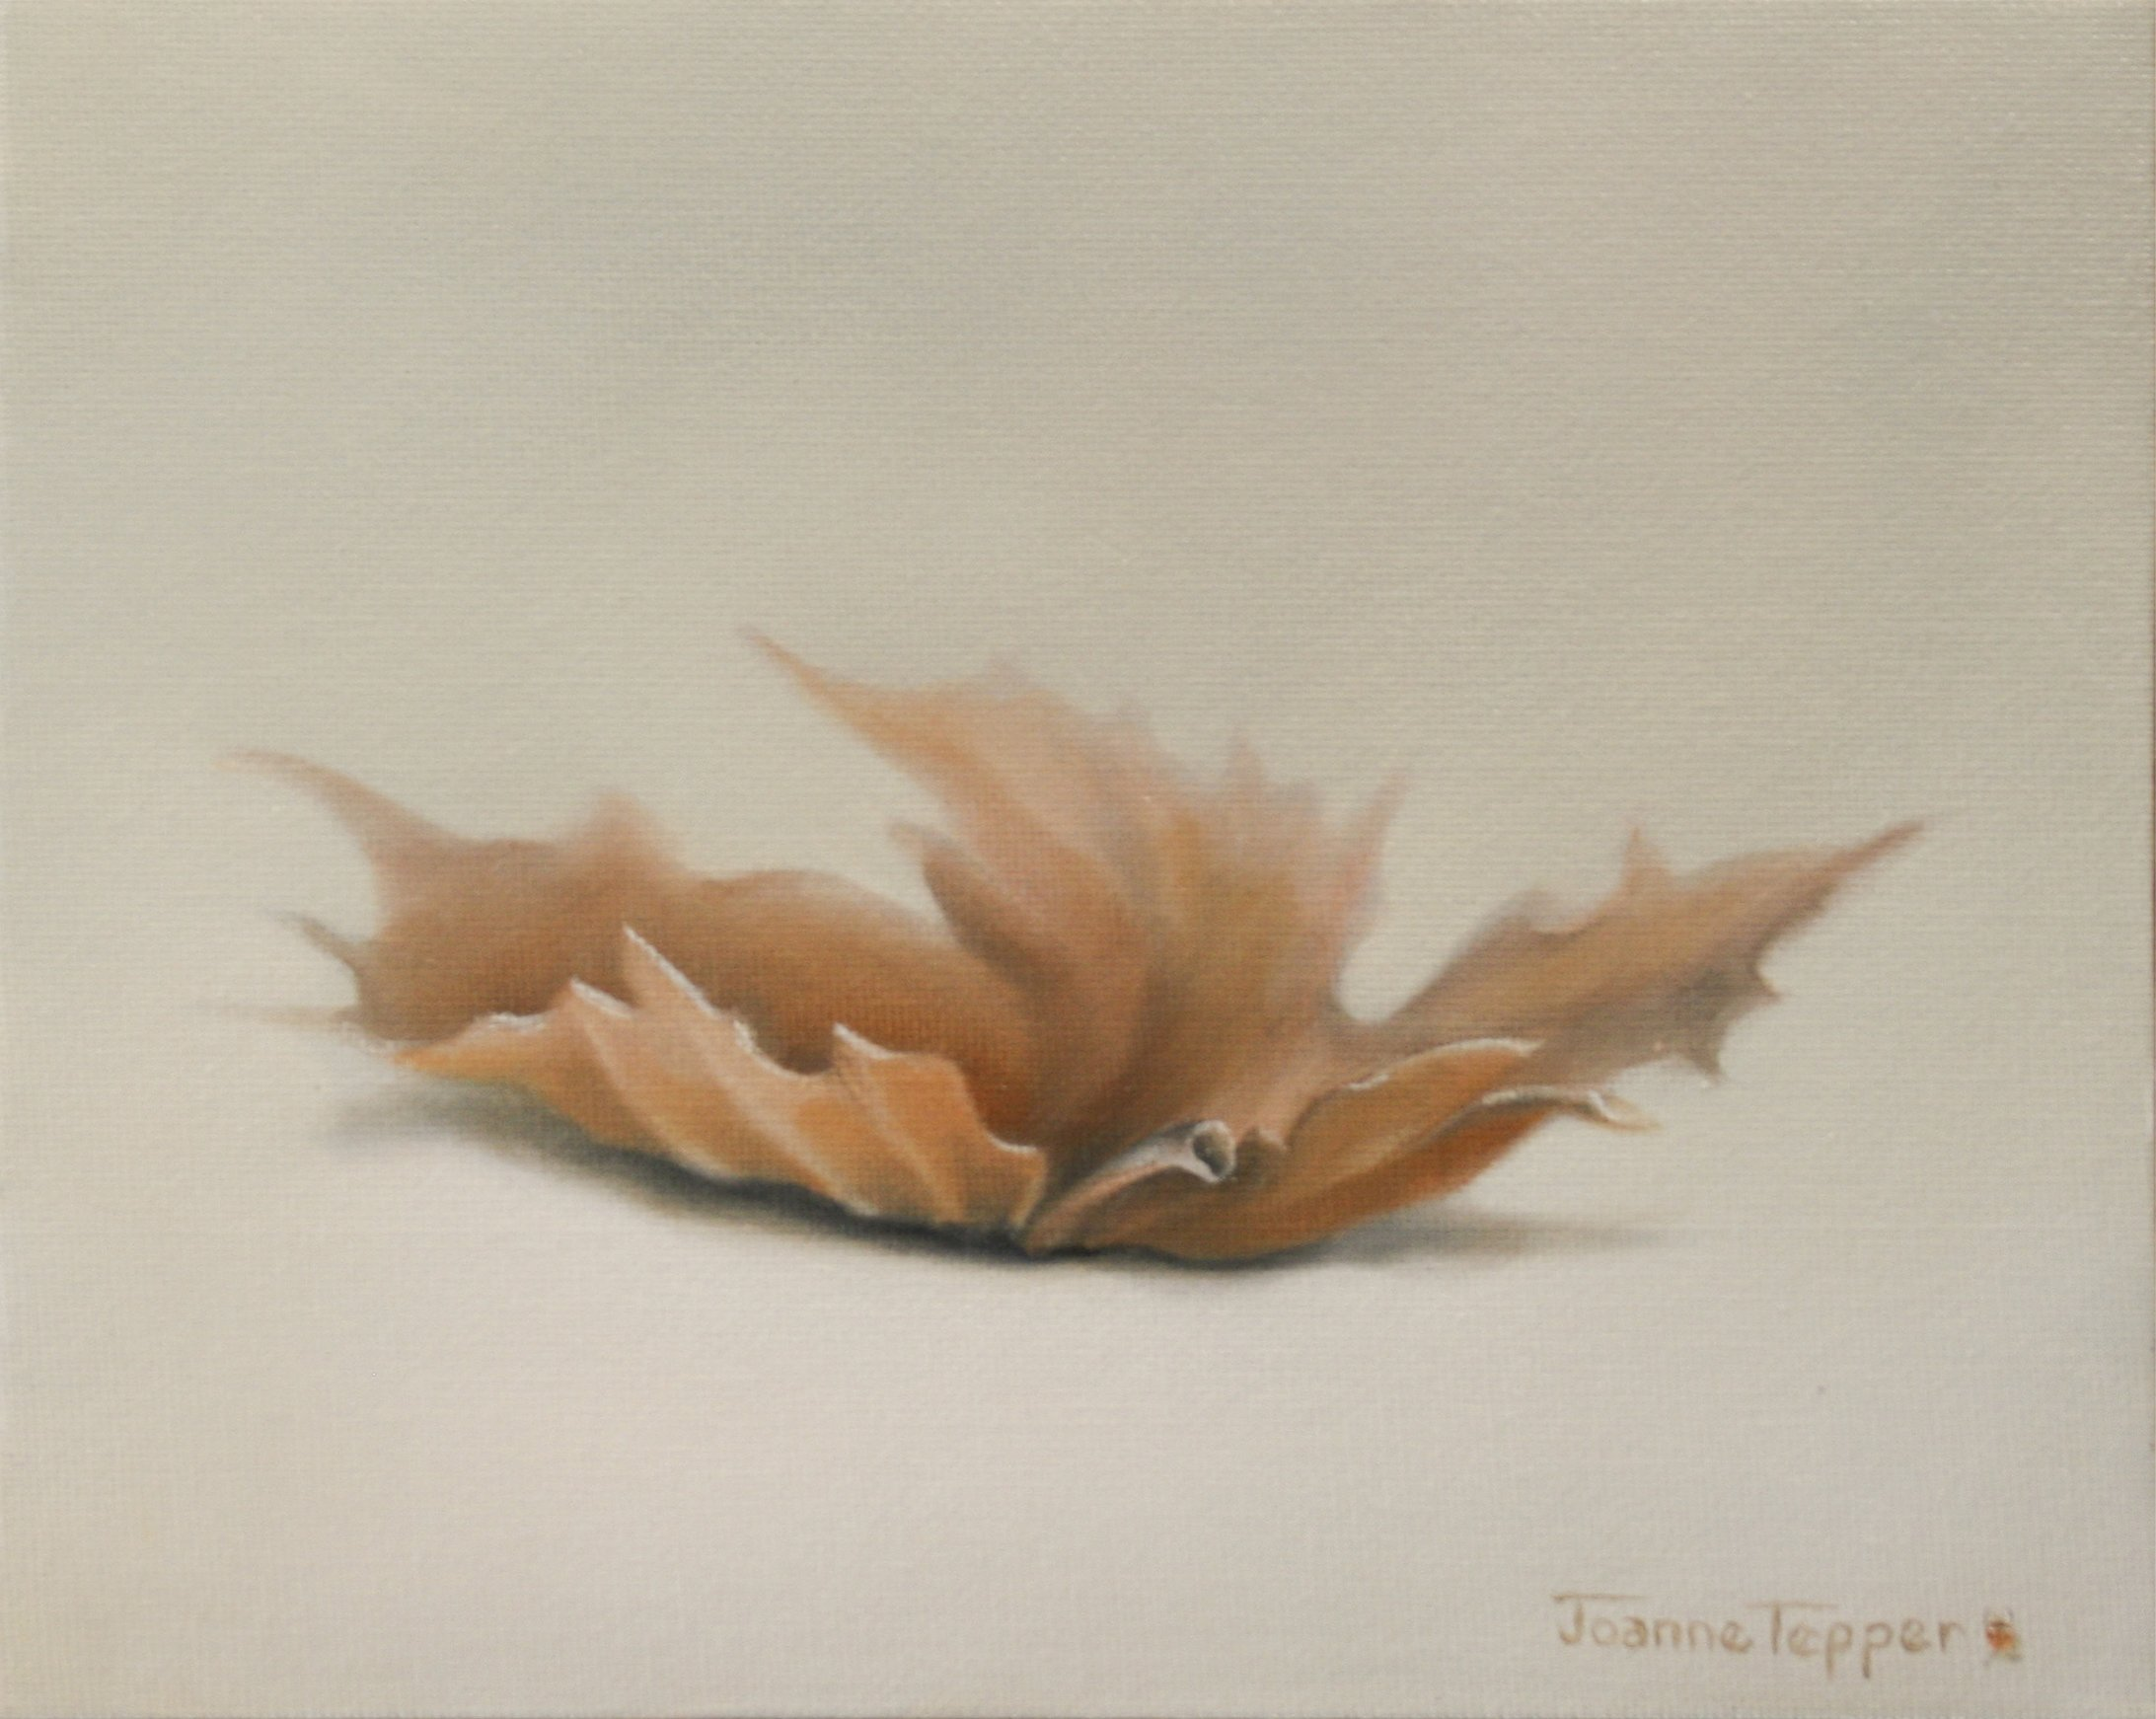 Tepper, Joanne – Sycamore Leaf No. 1, 2013